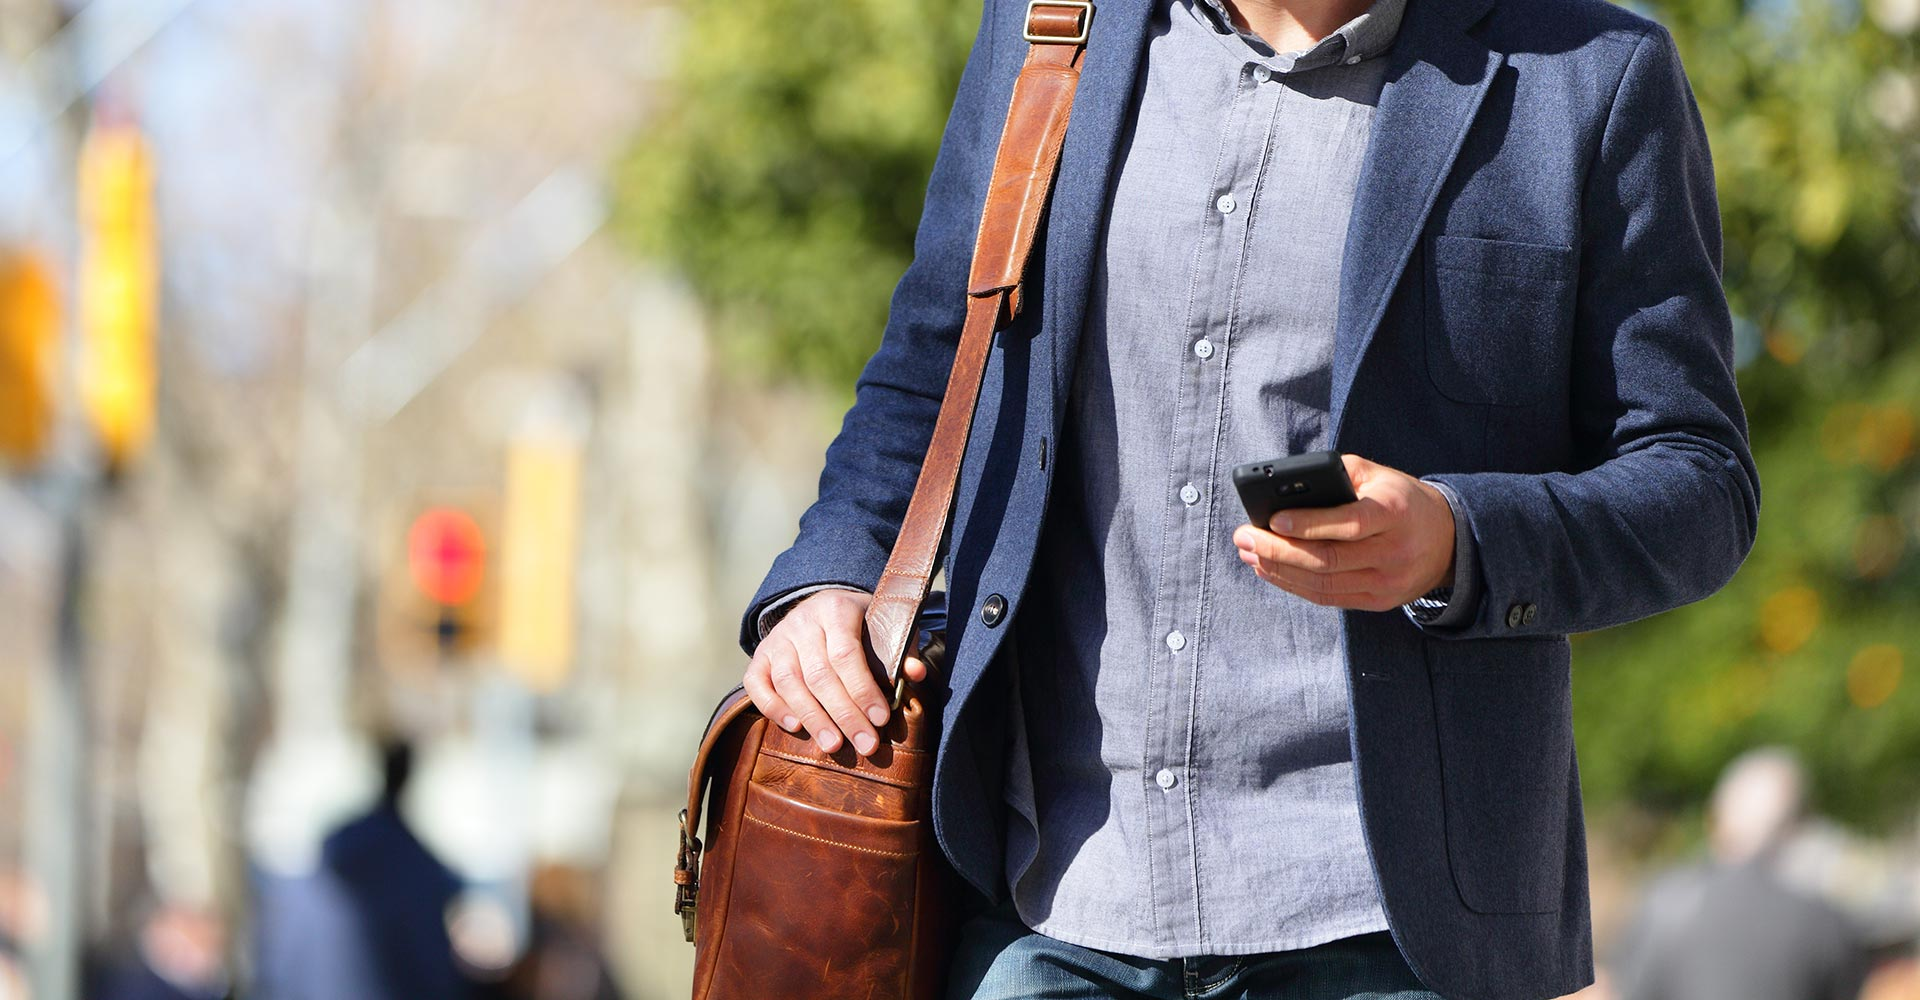 A man texting while crossing the street